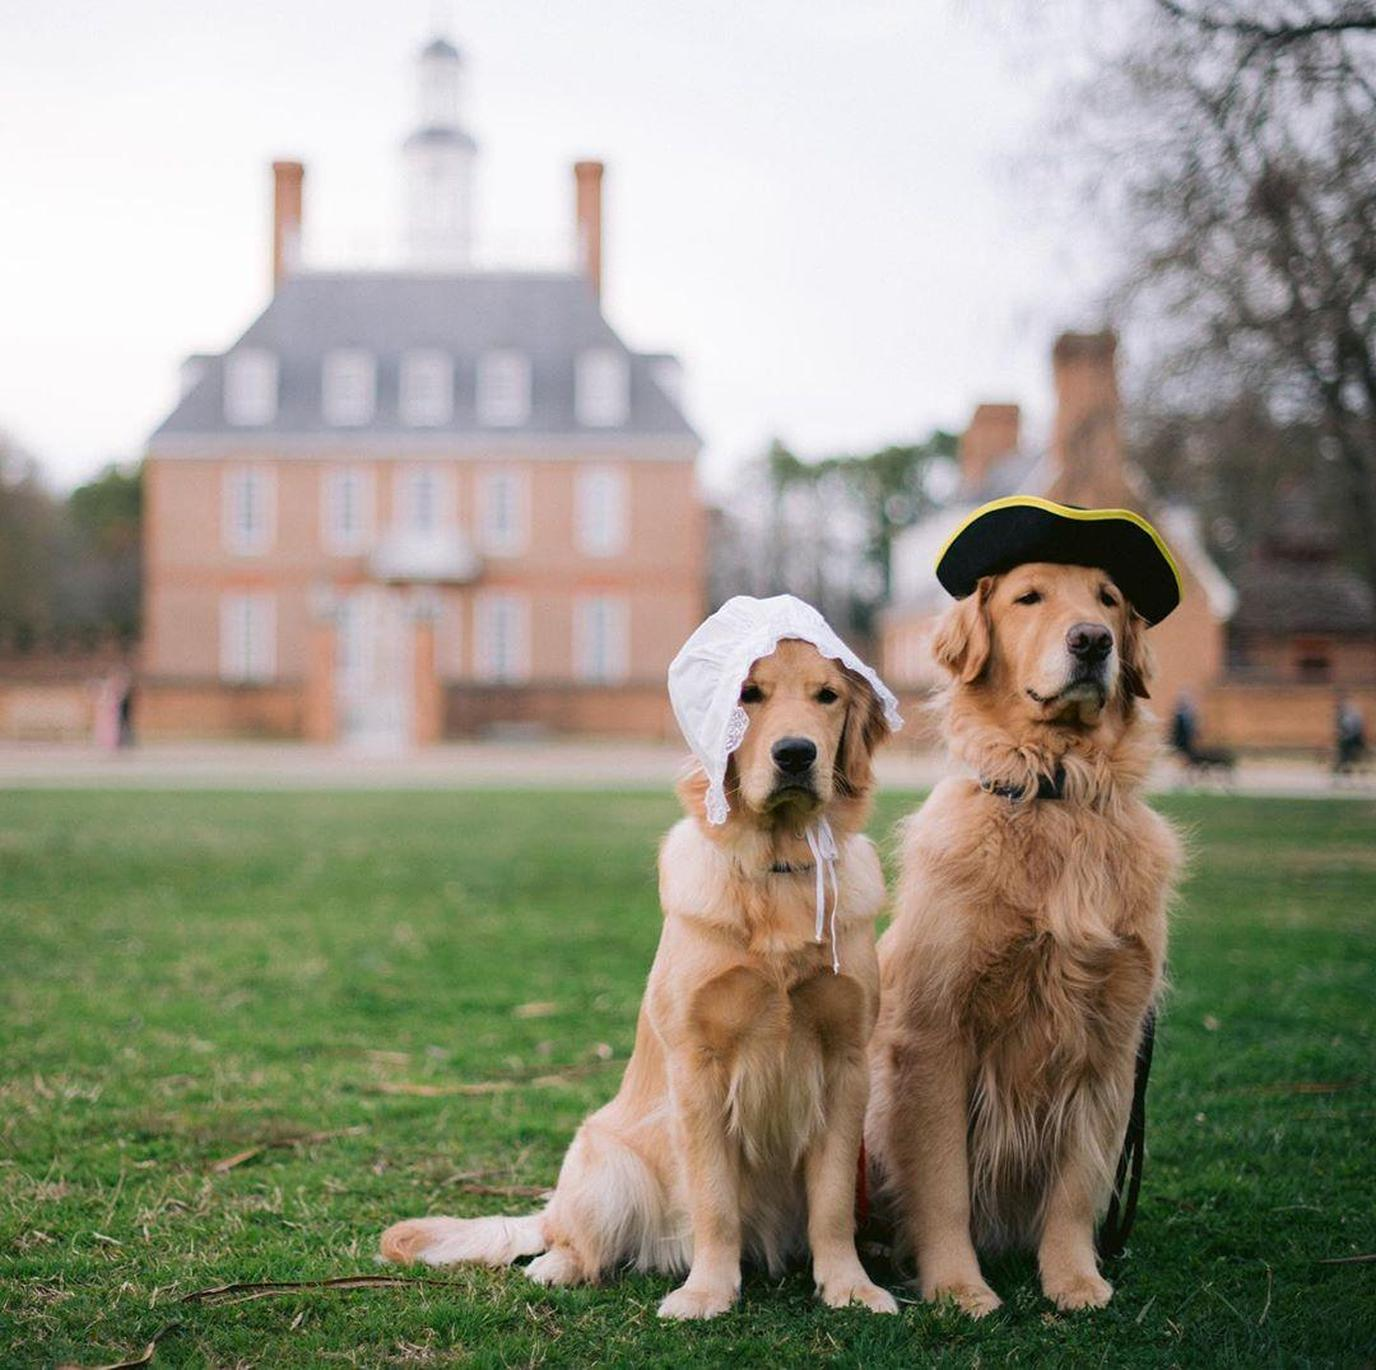 Two Retrievers Wear Colonial-Era Hats While Visiting Pet-Friendly Colonial Willamsburg.